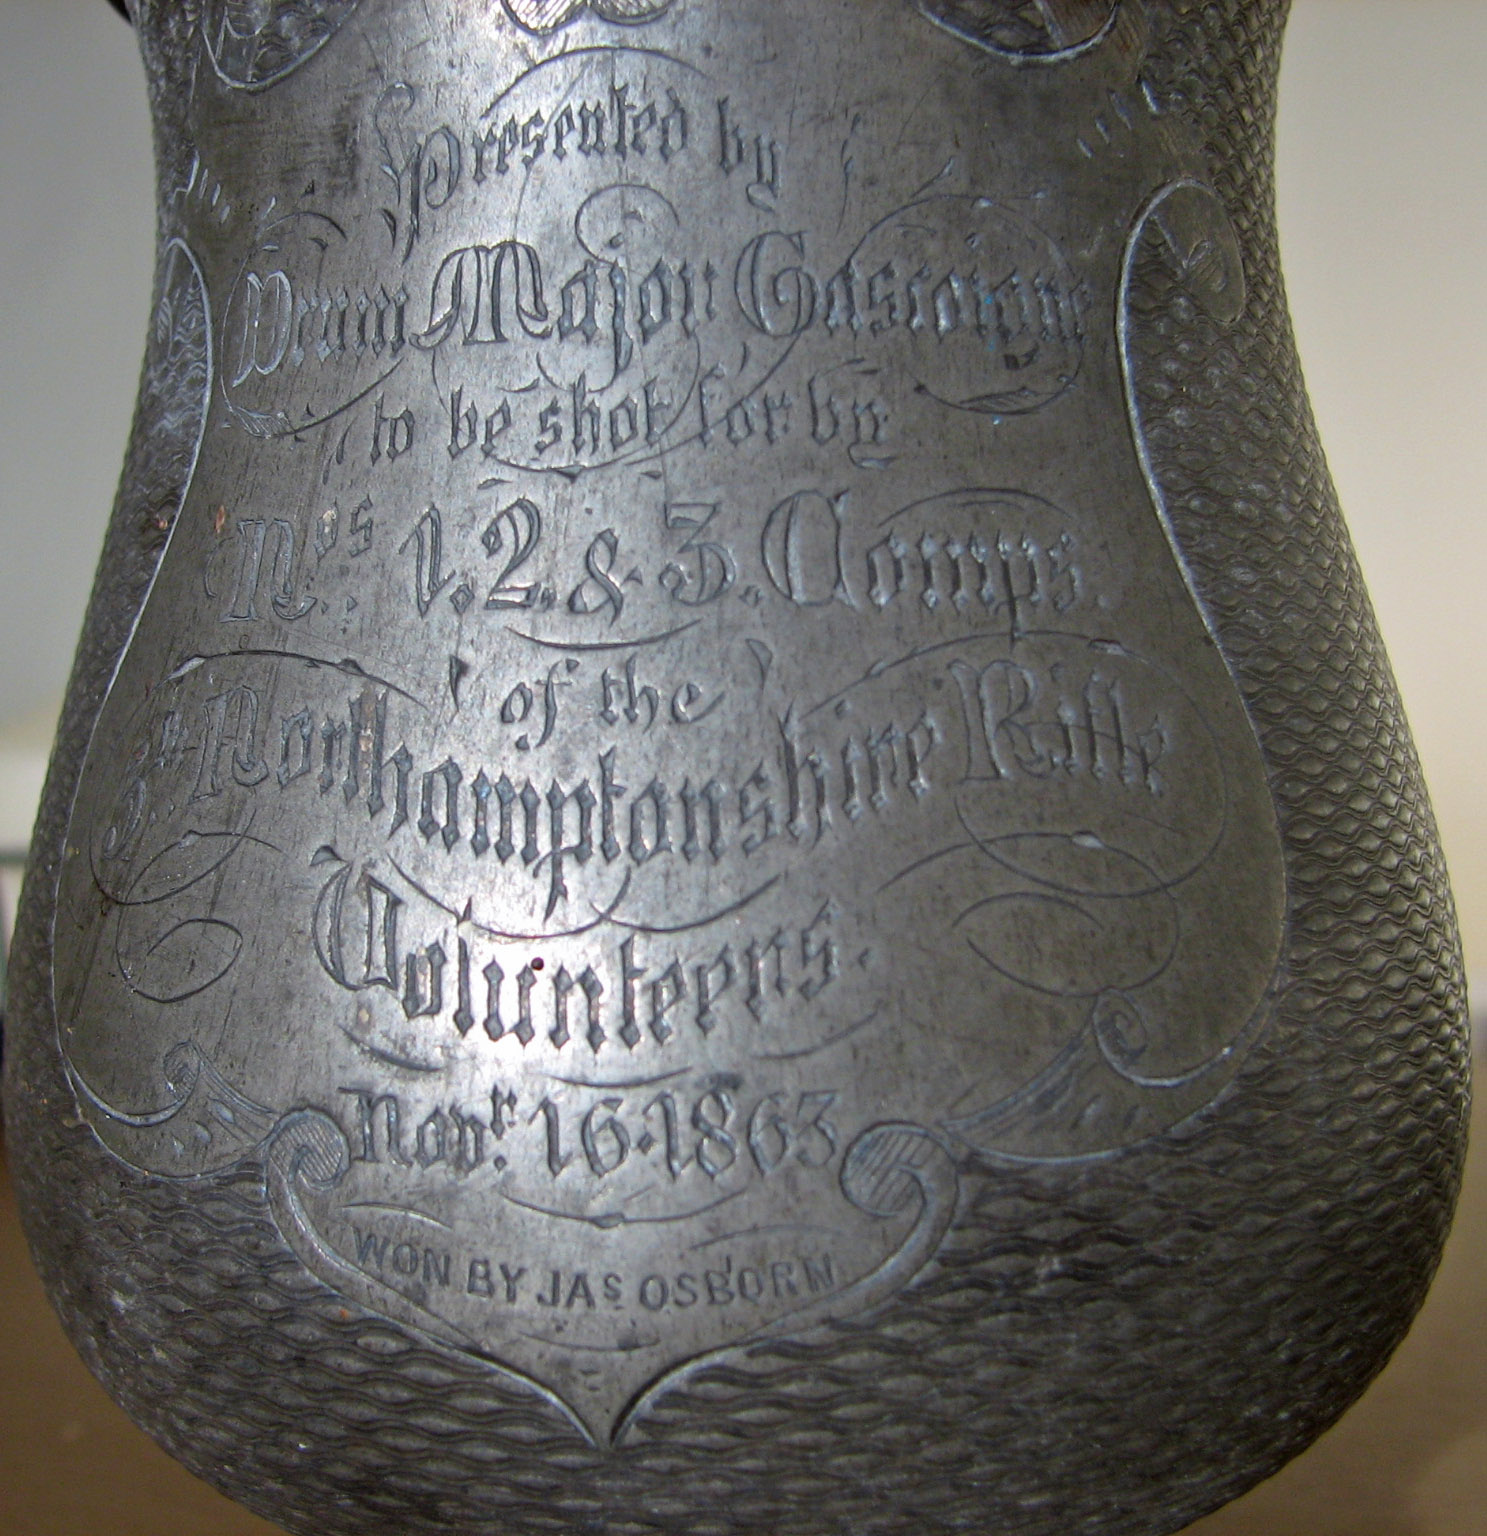 Inscription on cup